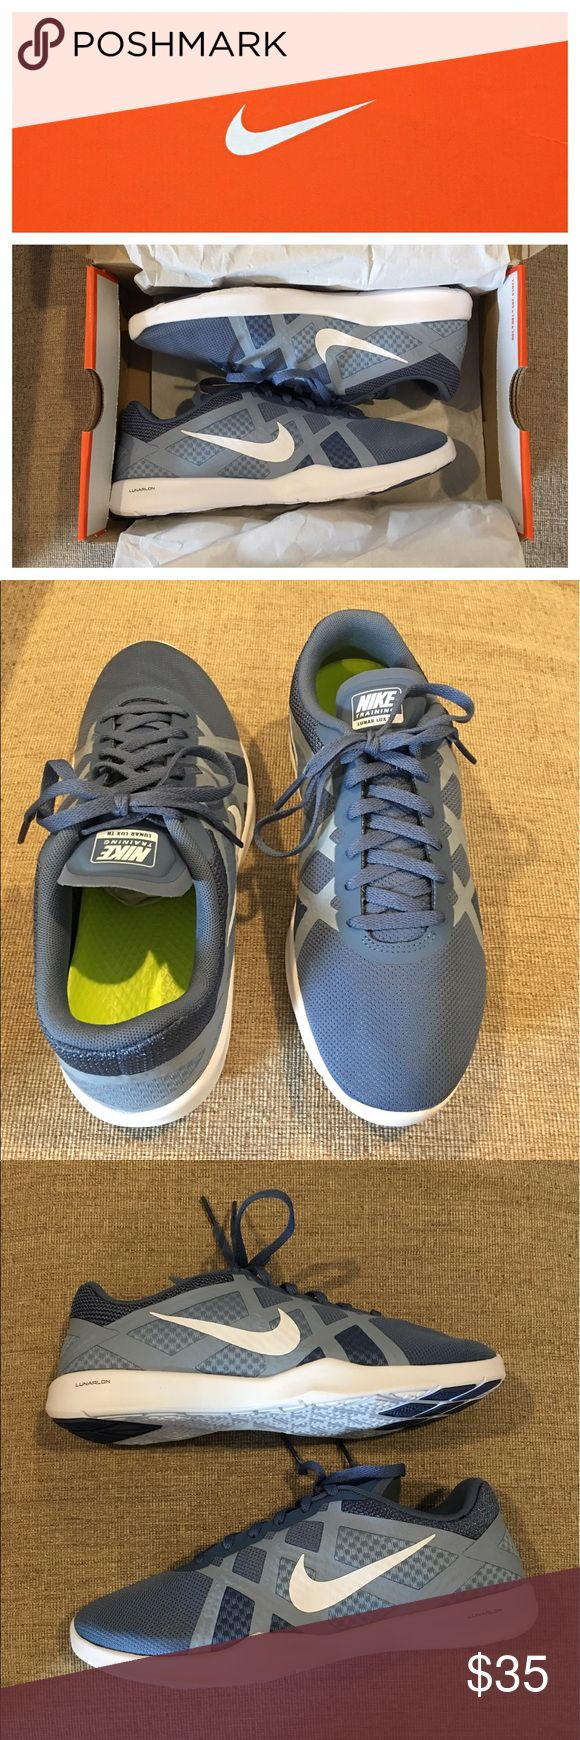 New Nike Women's Lunar Lux Shoes- Size 7 New in box!  Nike lunarlon Lunar lux TR woman's running - cross training shoes, size 7  Color: Ocean fog / white - blue grey  - volt Nike Shoes Athletic Shoes